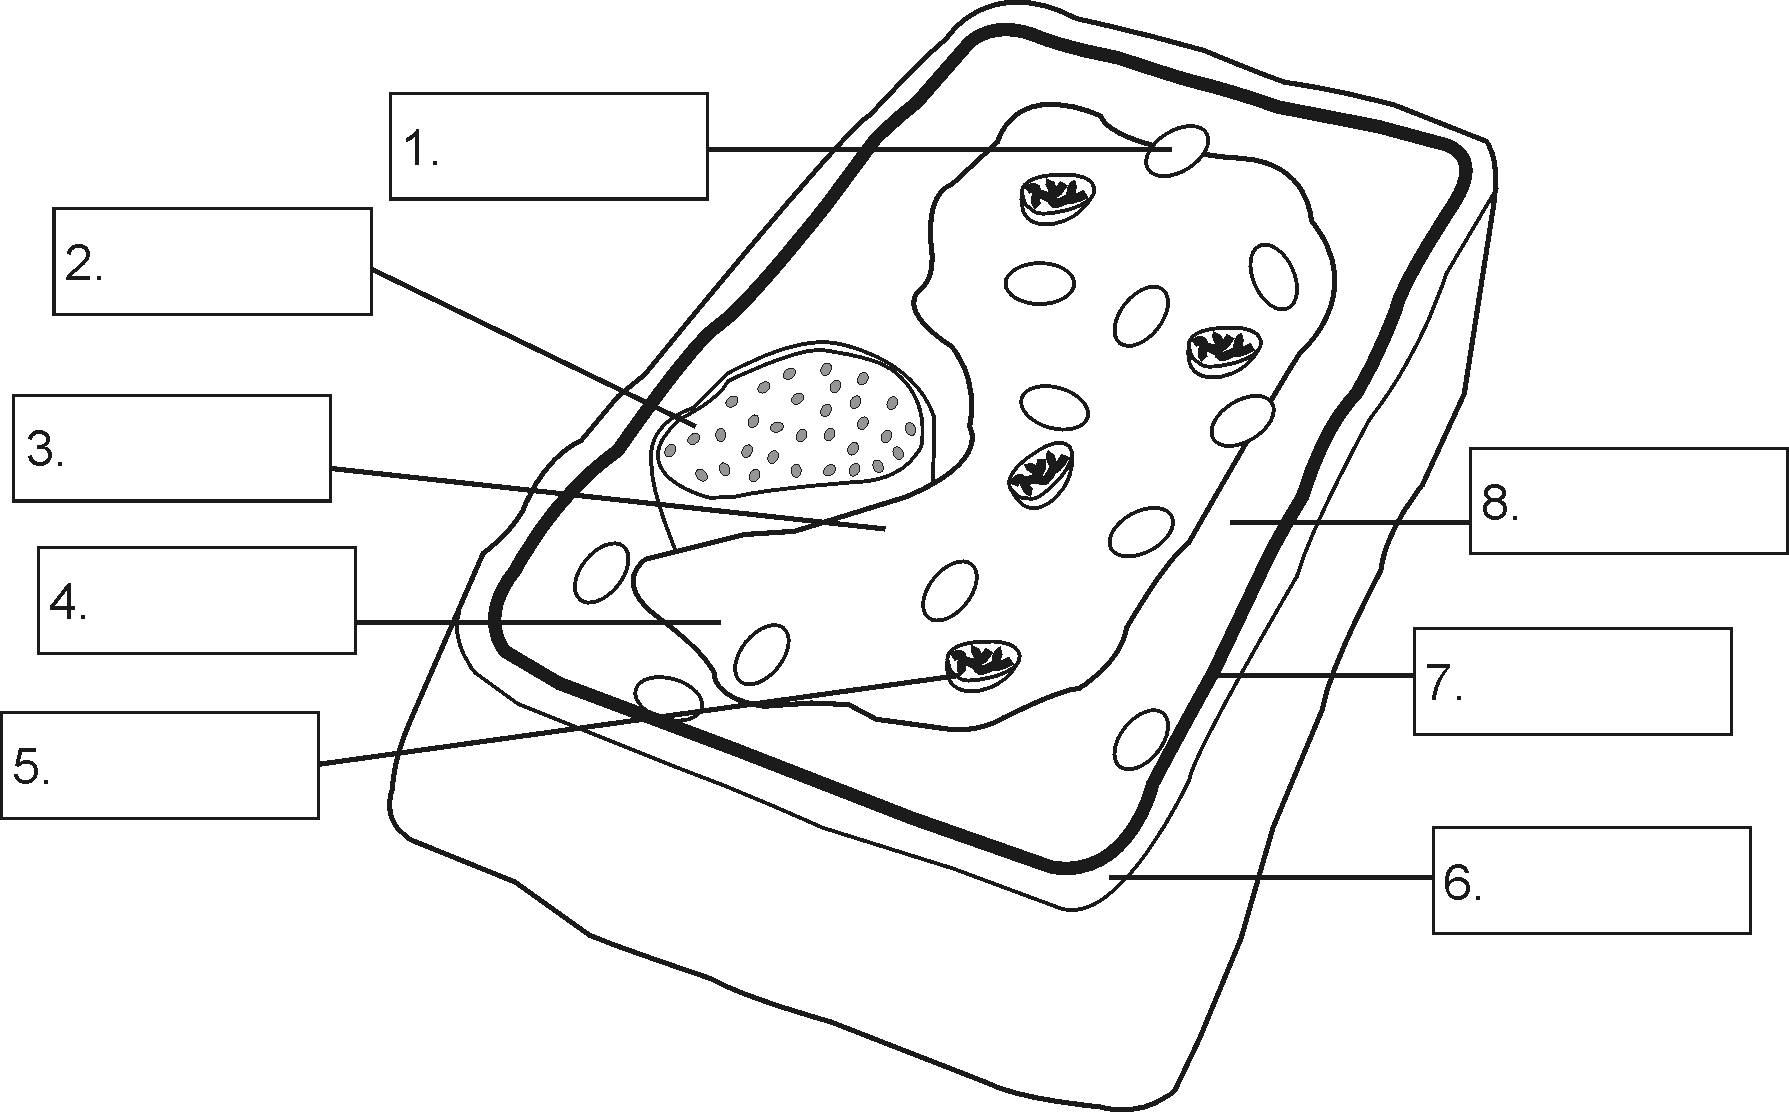 Plant Cell Diagram Without Labels